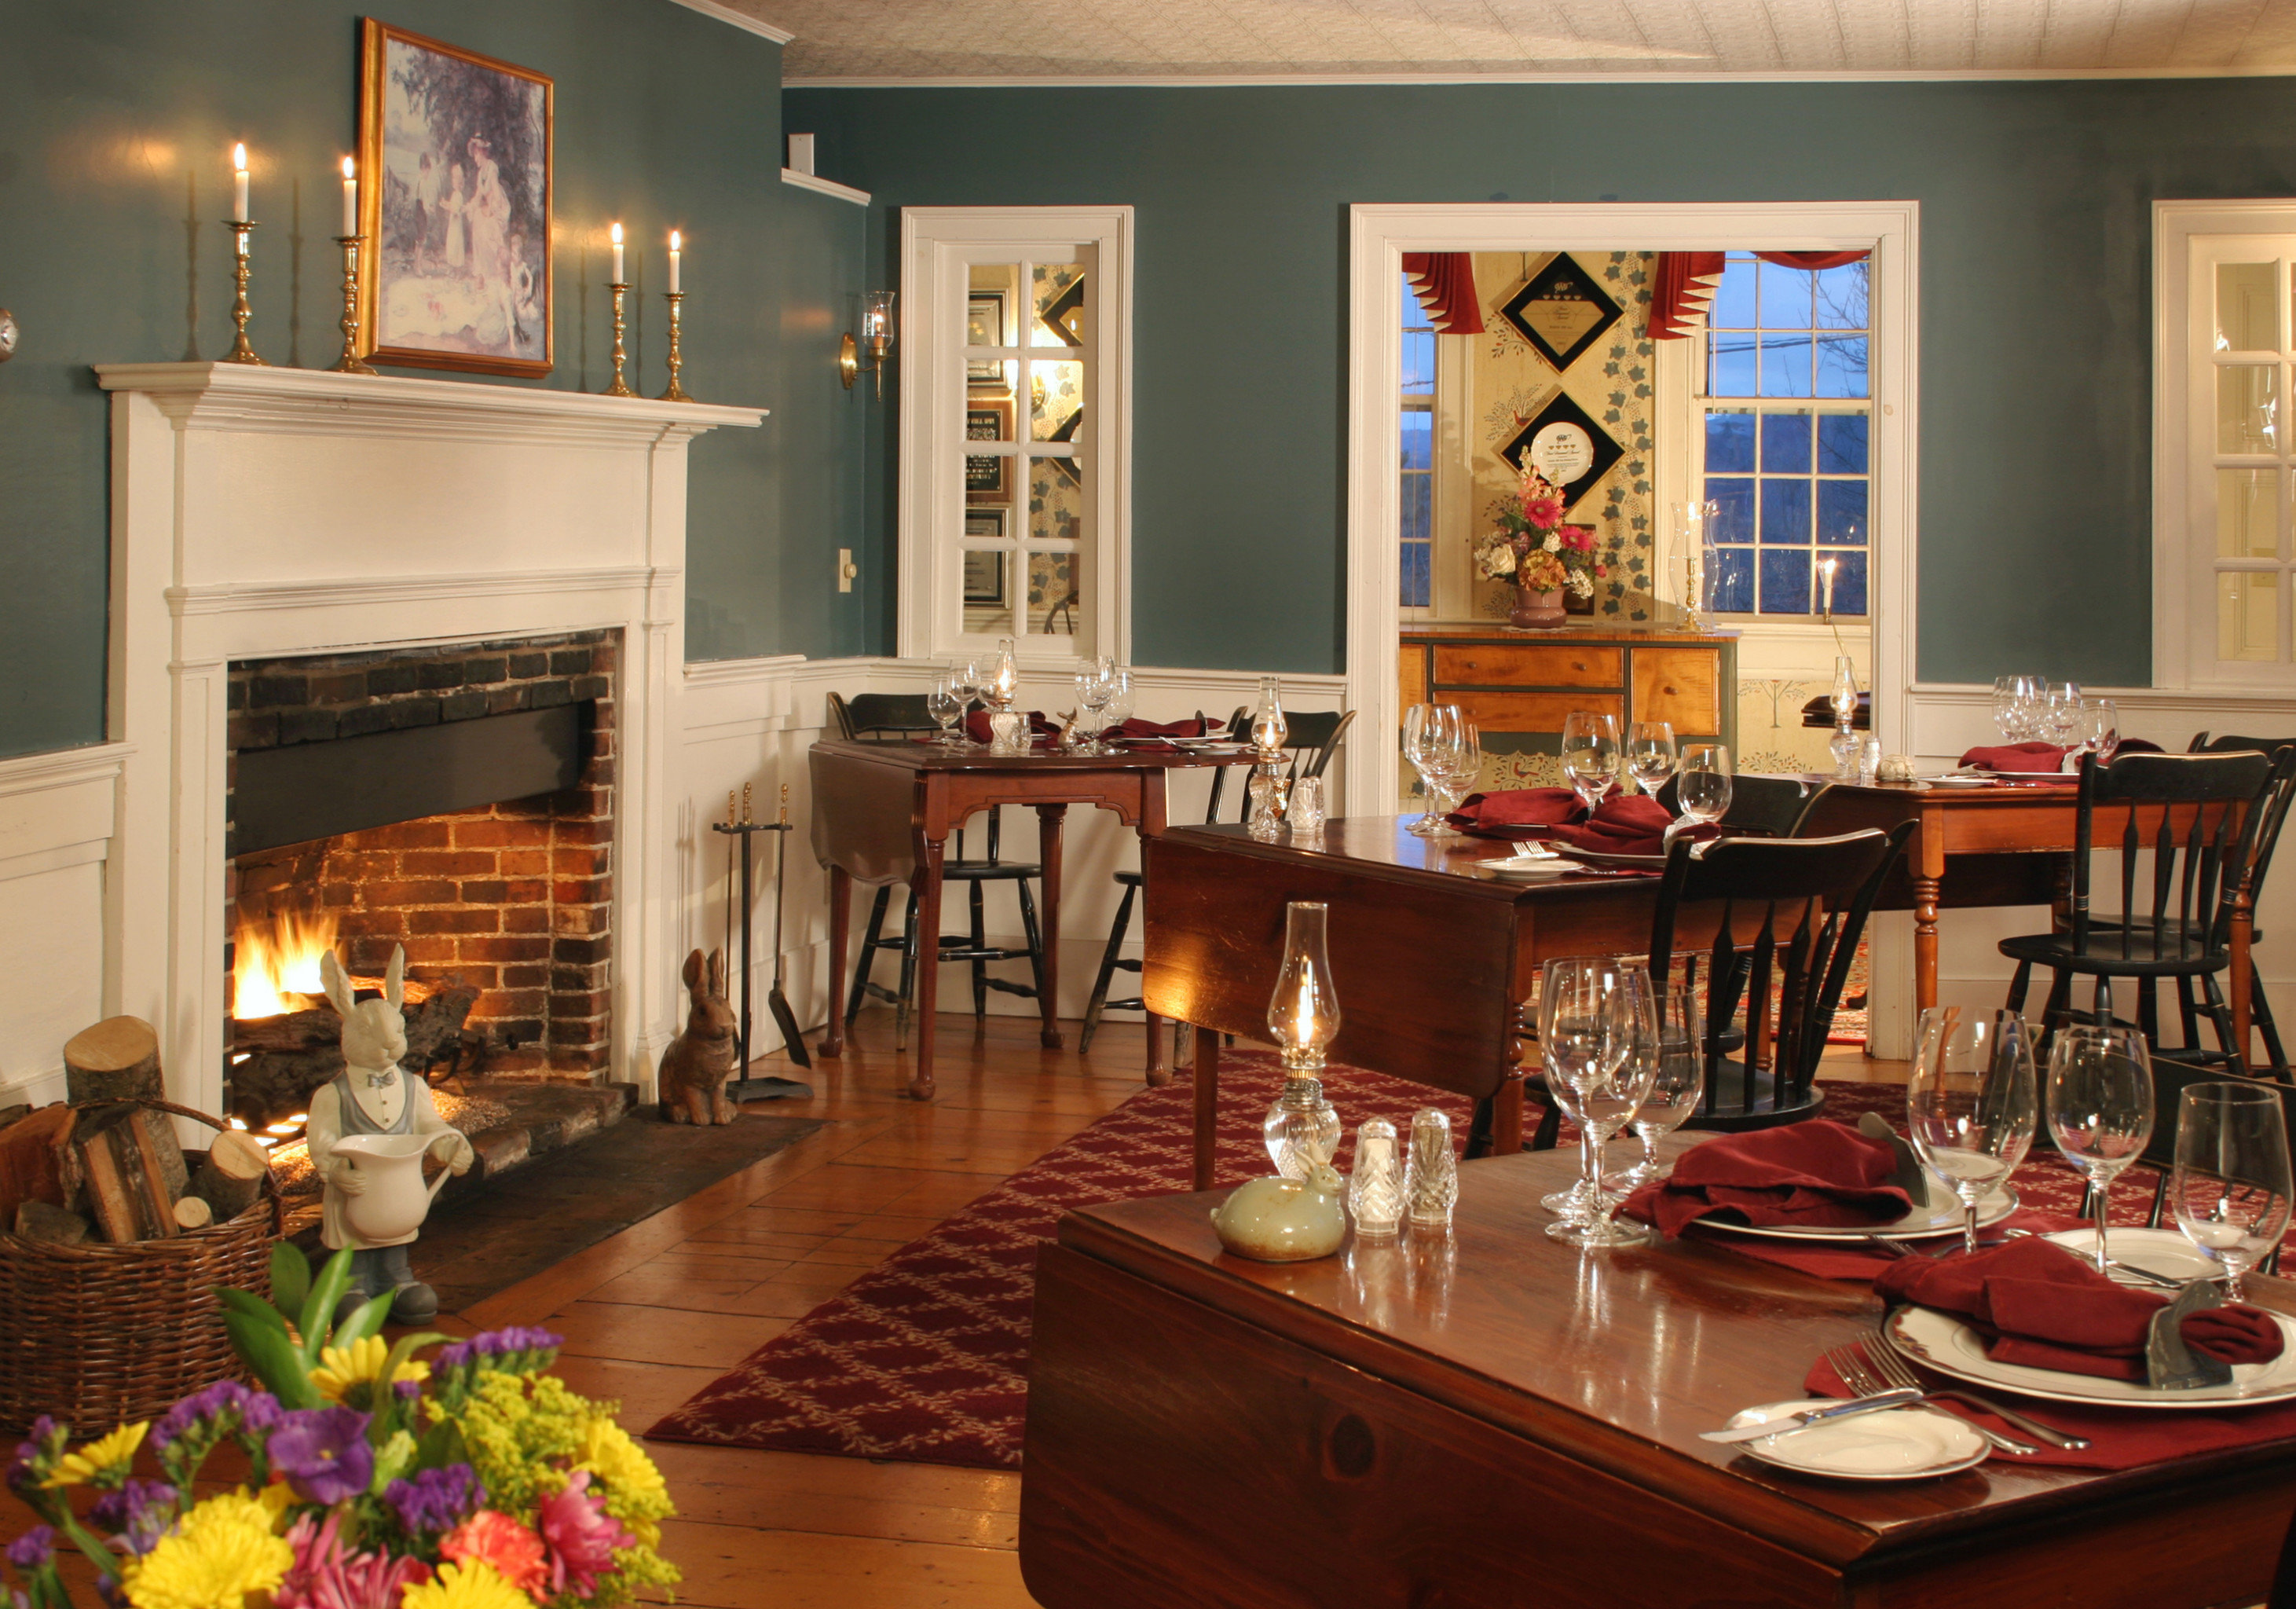 Classic Country Dining Drink Eat Inn home Fireplace restaurant living room Lobby